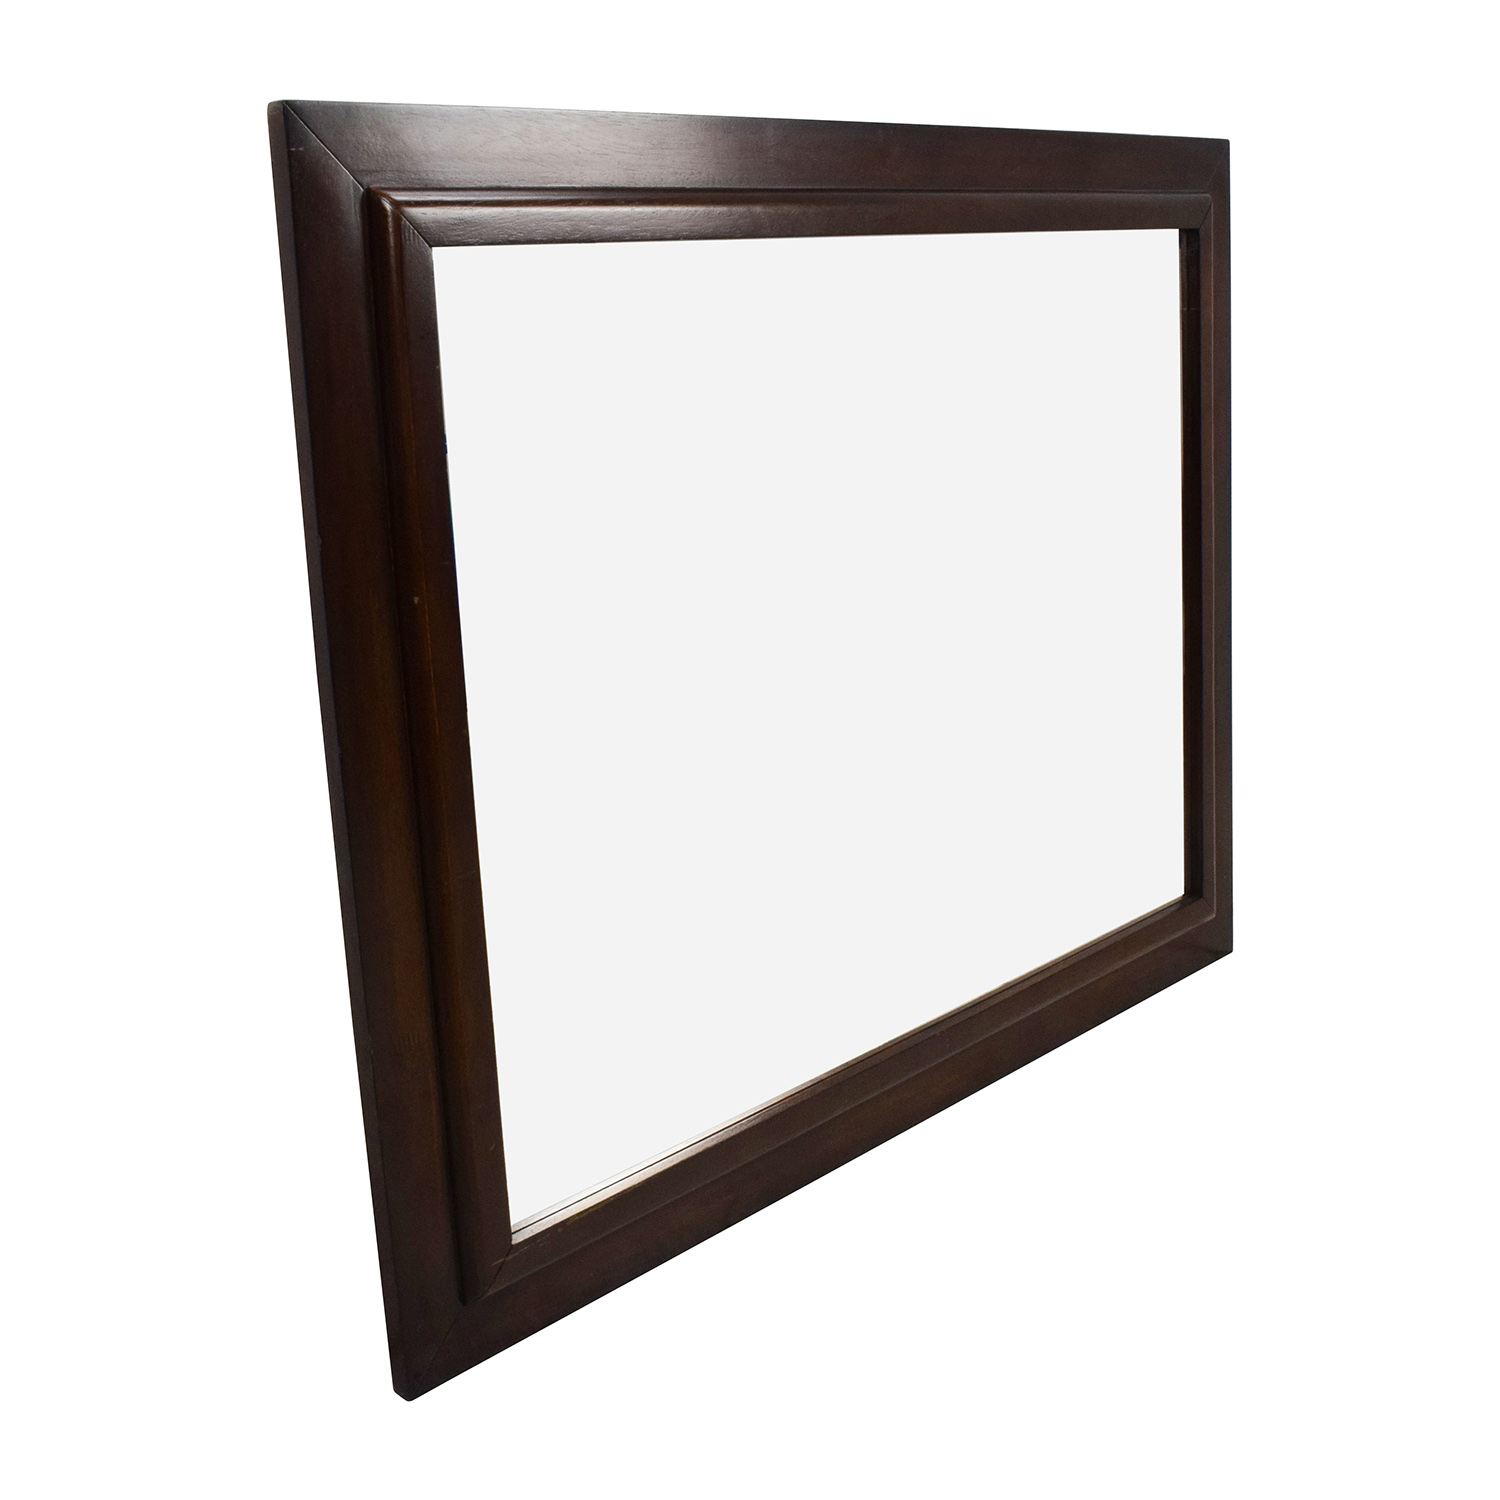 80 off large square wood framed wall mirror decor for Big framed mirror